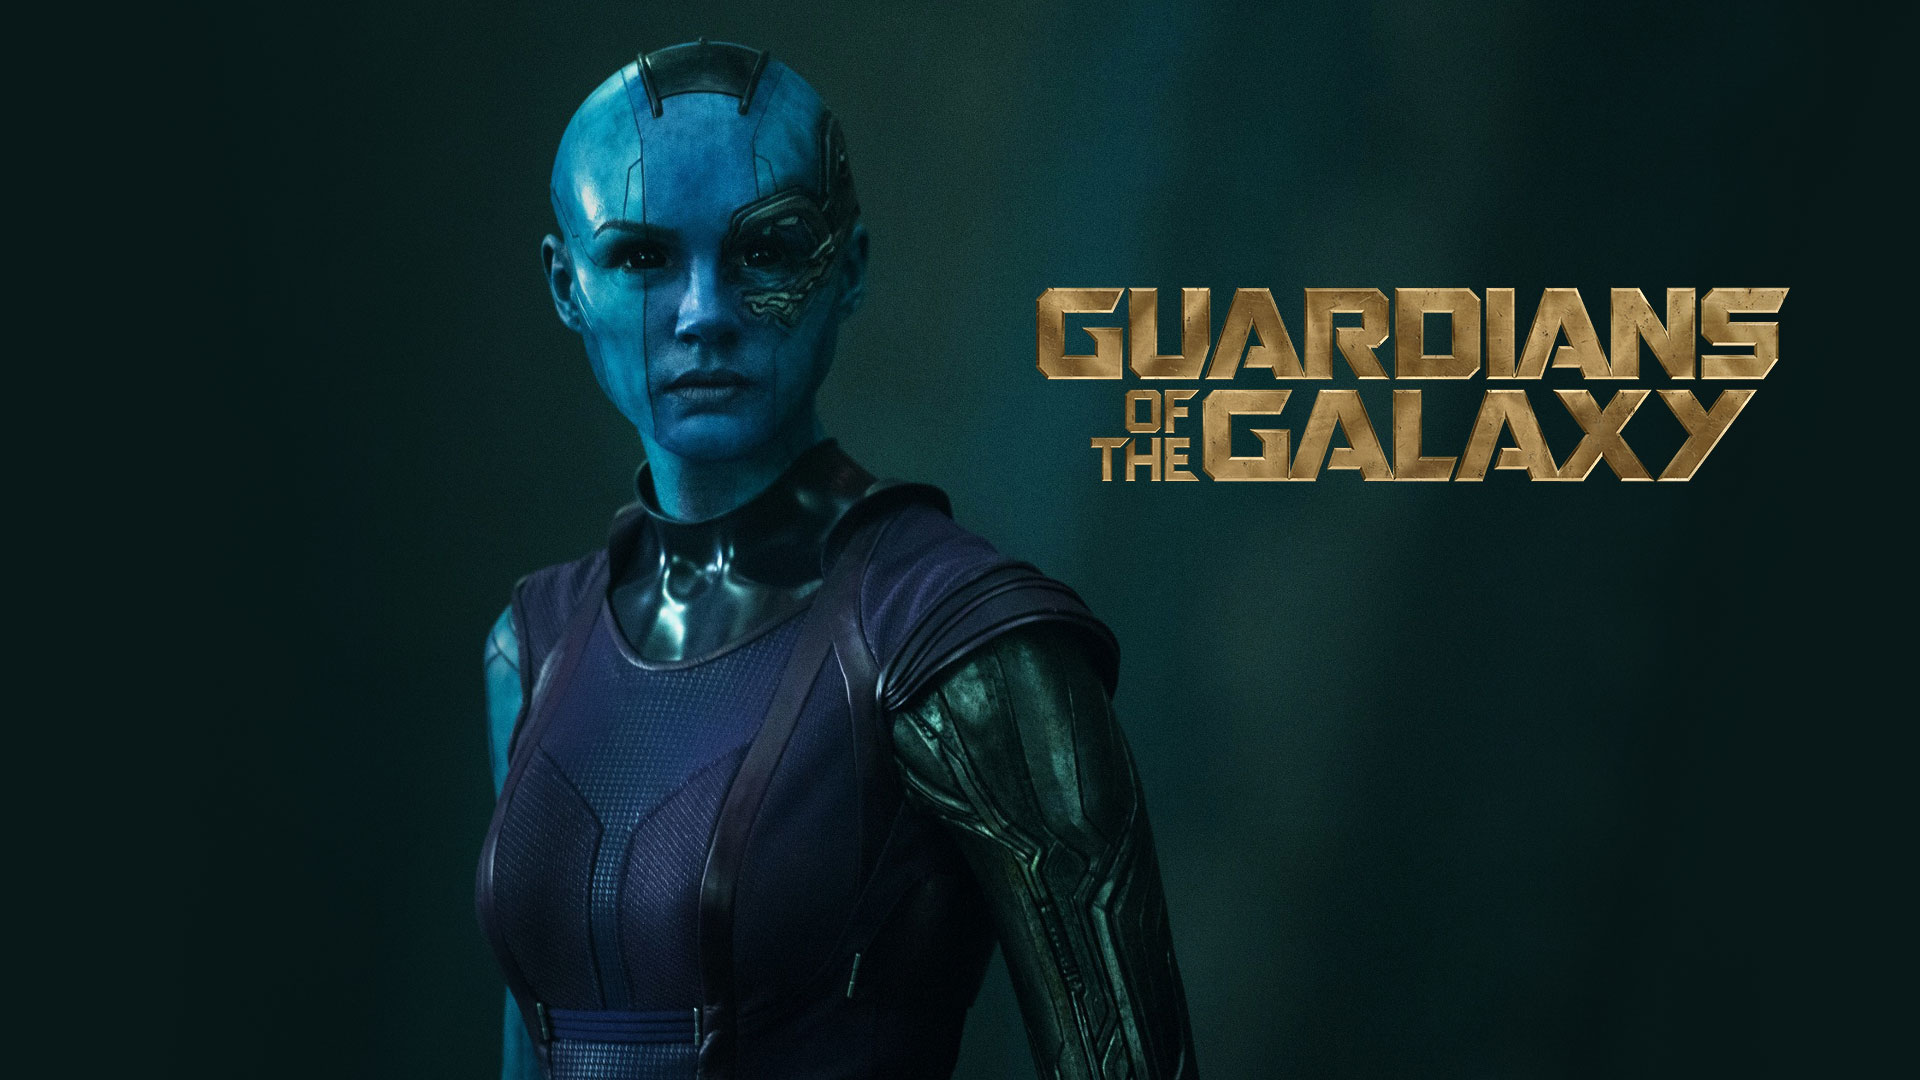 Download Wallpaper Movie Guardians The Galaxy - guardians-of-the-galaxy-nebula-karen-gillan-wallpaper  Graphic_735223.jpg